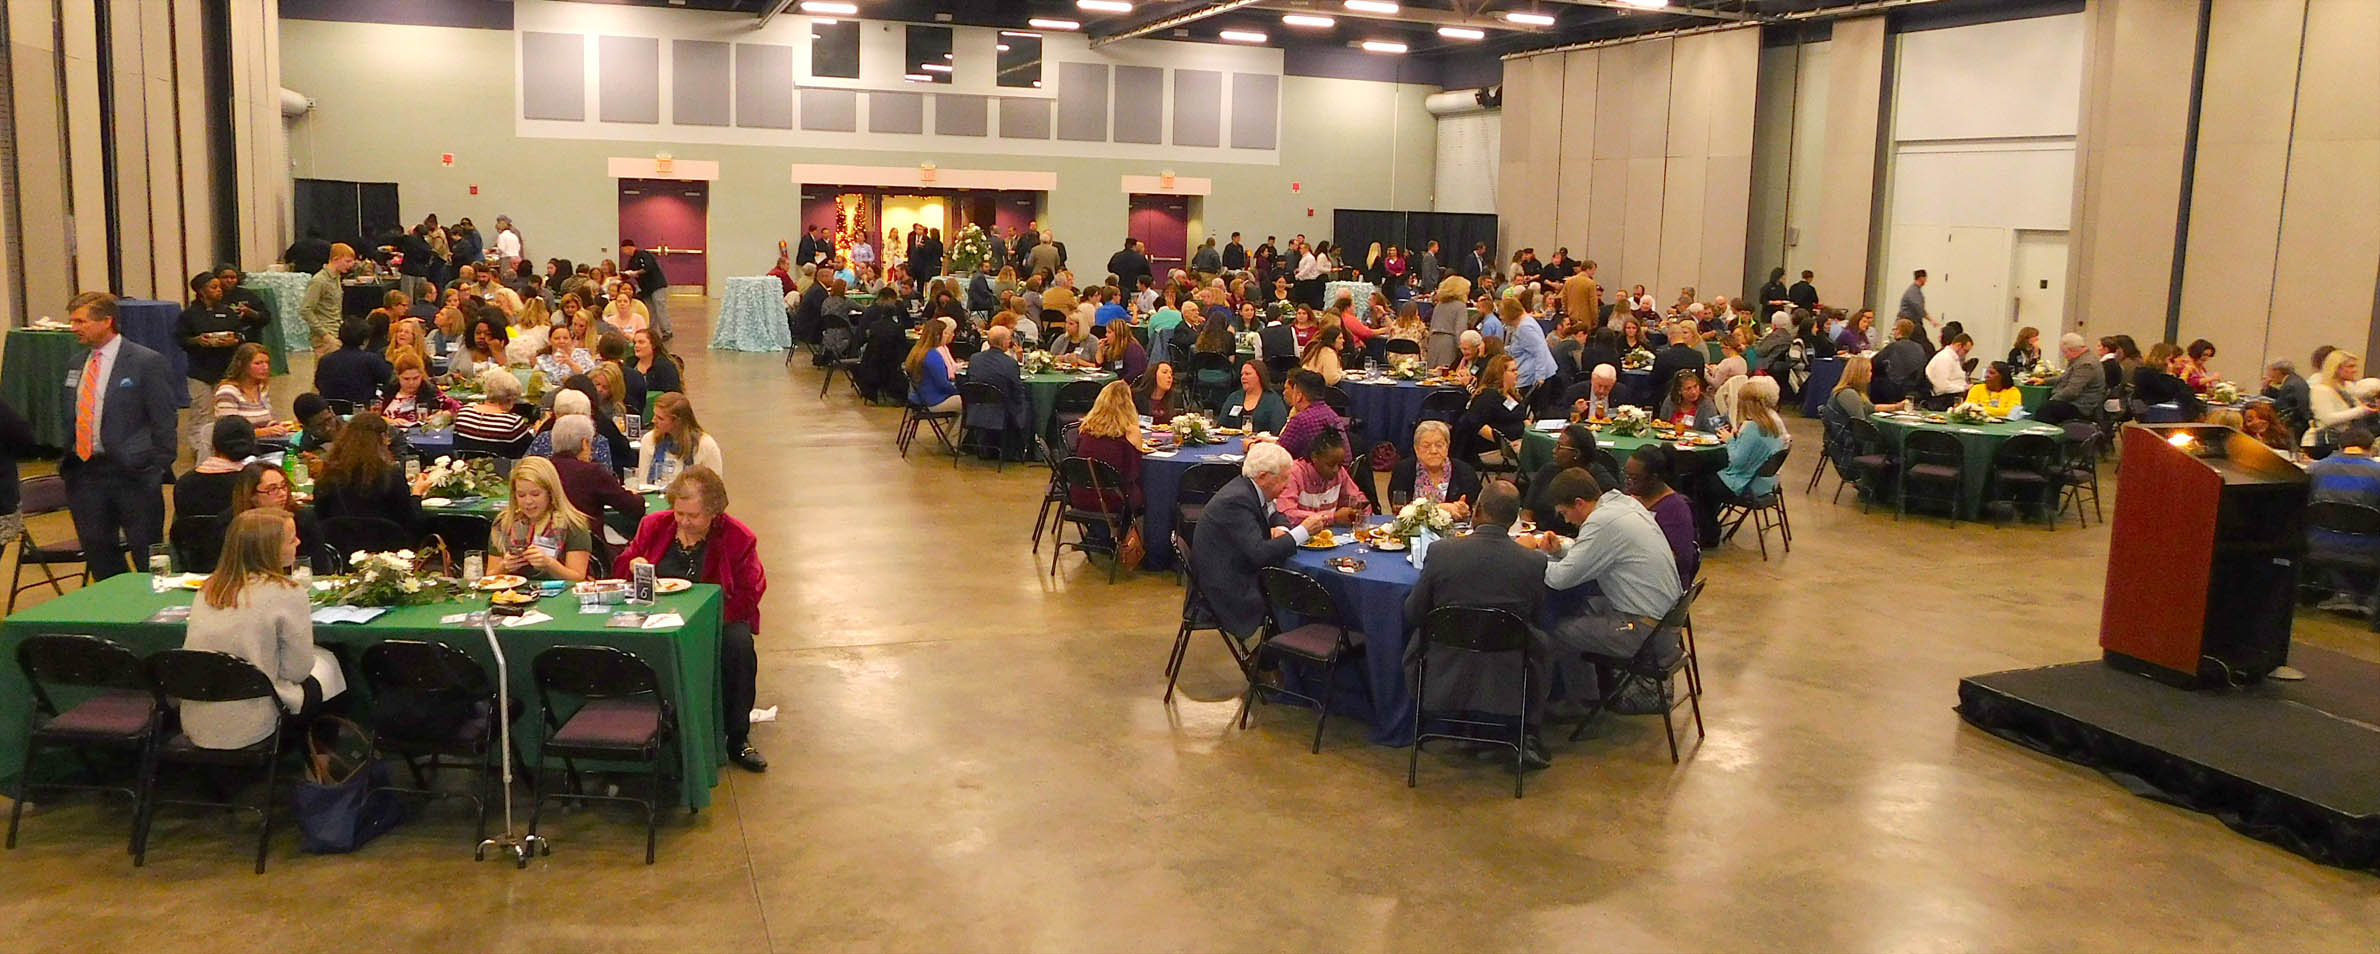 Click to enlarge,  The Central Carolina Community College's Scholarship Luncheon was held on November 15, at the Dennis A. Wicker Civic Center.